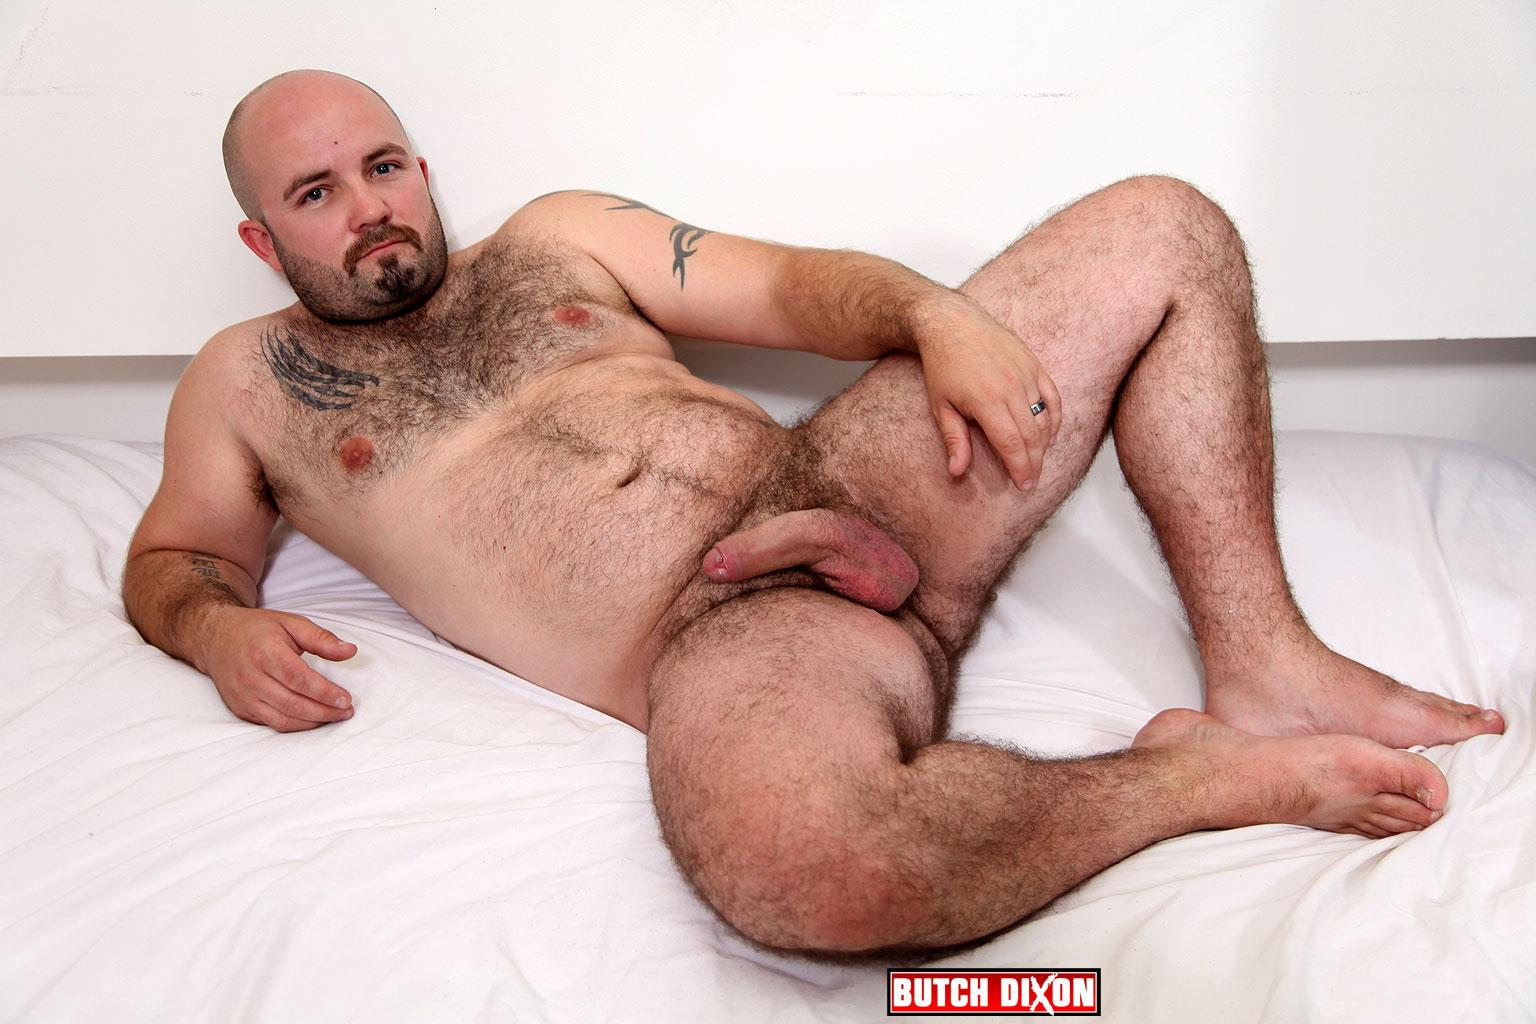 Butch-Dixon-Tommo-Hawk-Chubby-Hairy-Guy-Playing-With-Big-Uncut-Cock-Amateur-Gay-Porn-09 Hairy Chubby Bear Plays With His Thick Uncut Cock And Big Hairy Ass